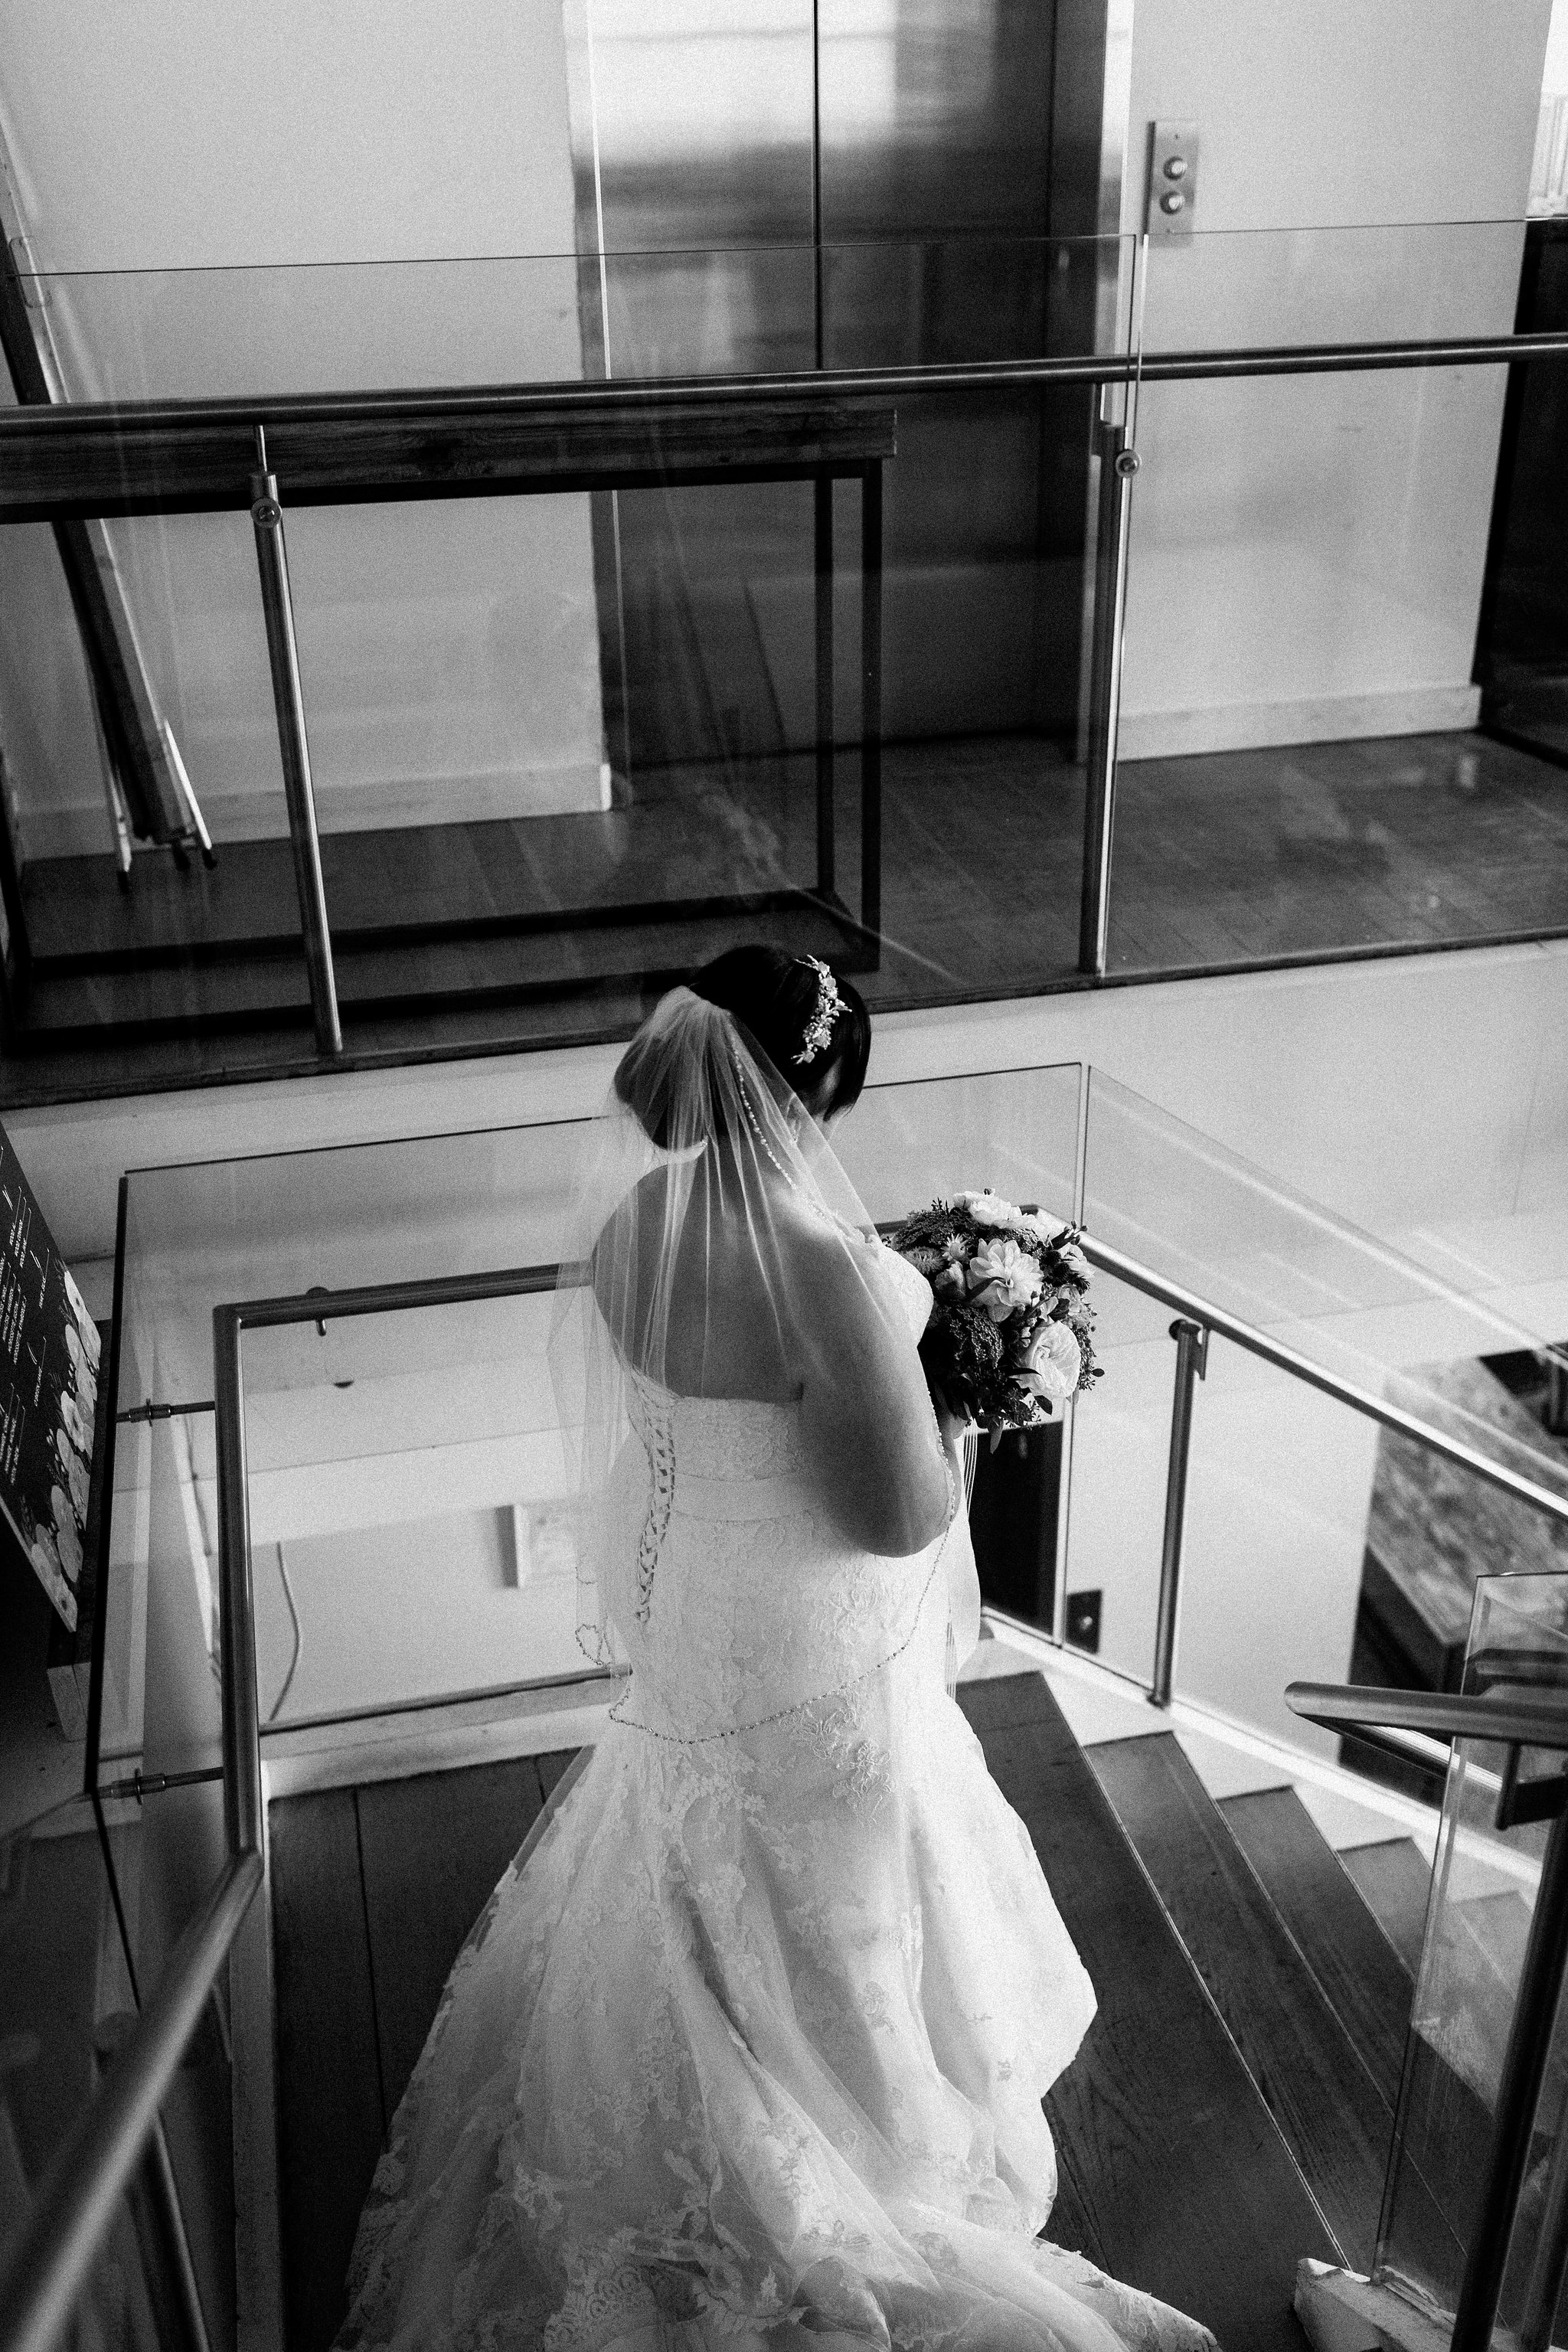 Kaity Josh Hotel Ocho Wedding Photos 157 - Hotel Ocho Wedding Photos